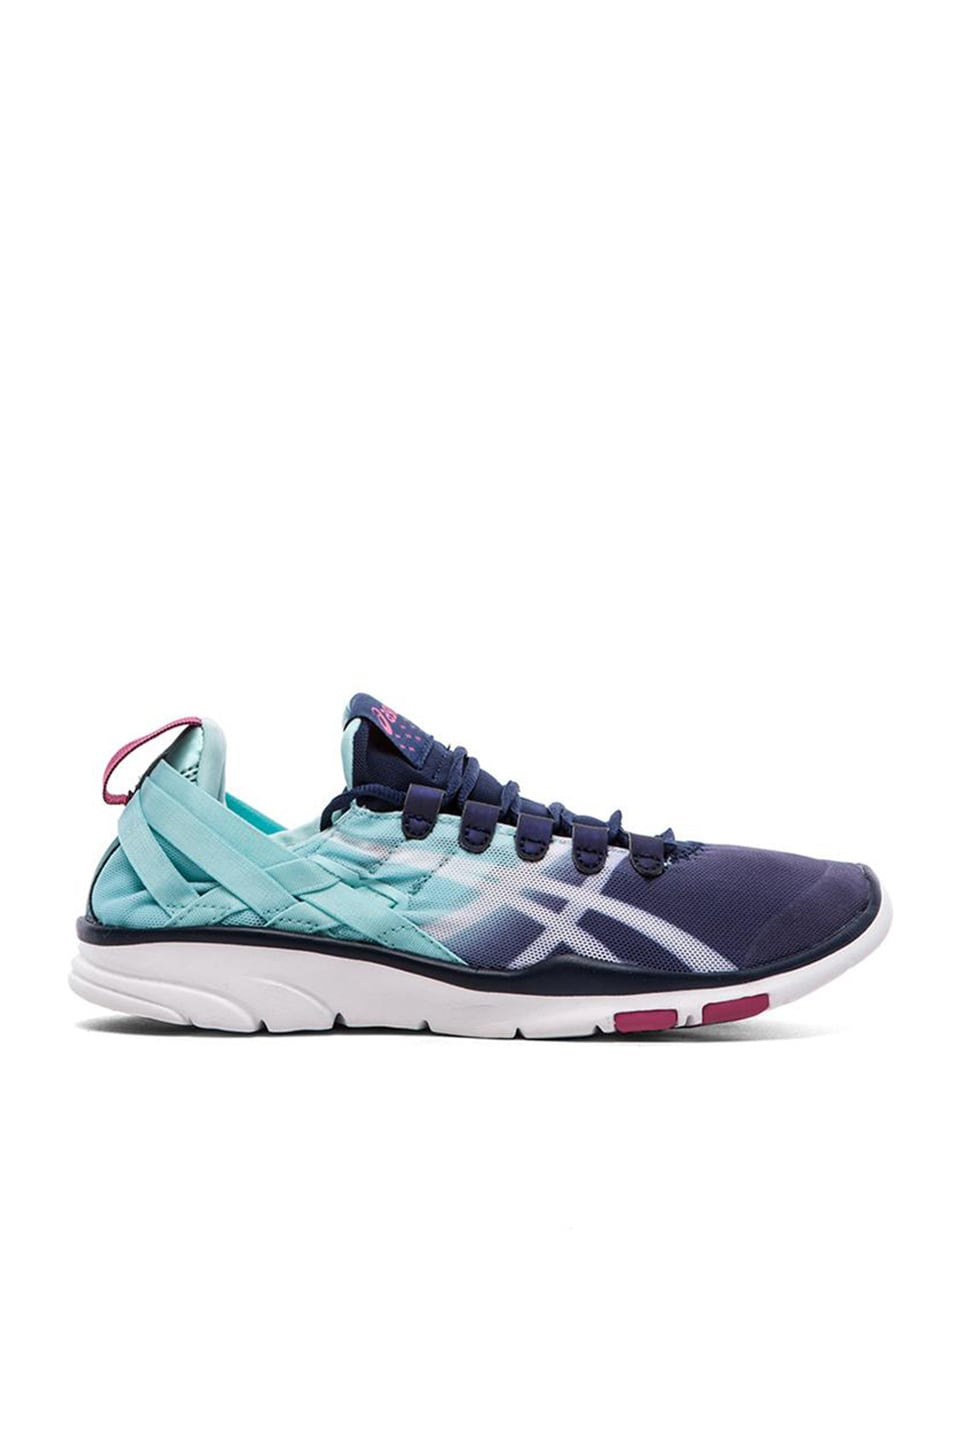 Asics Gel-Fit Sana Sneaker in Navy Mint